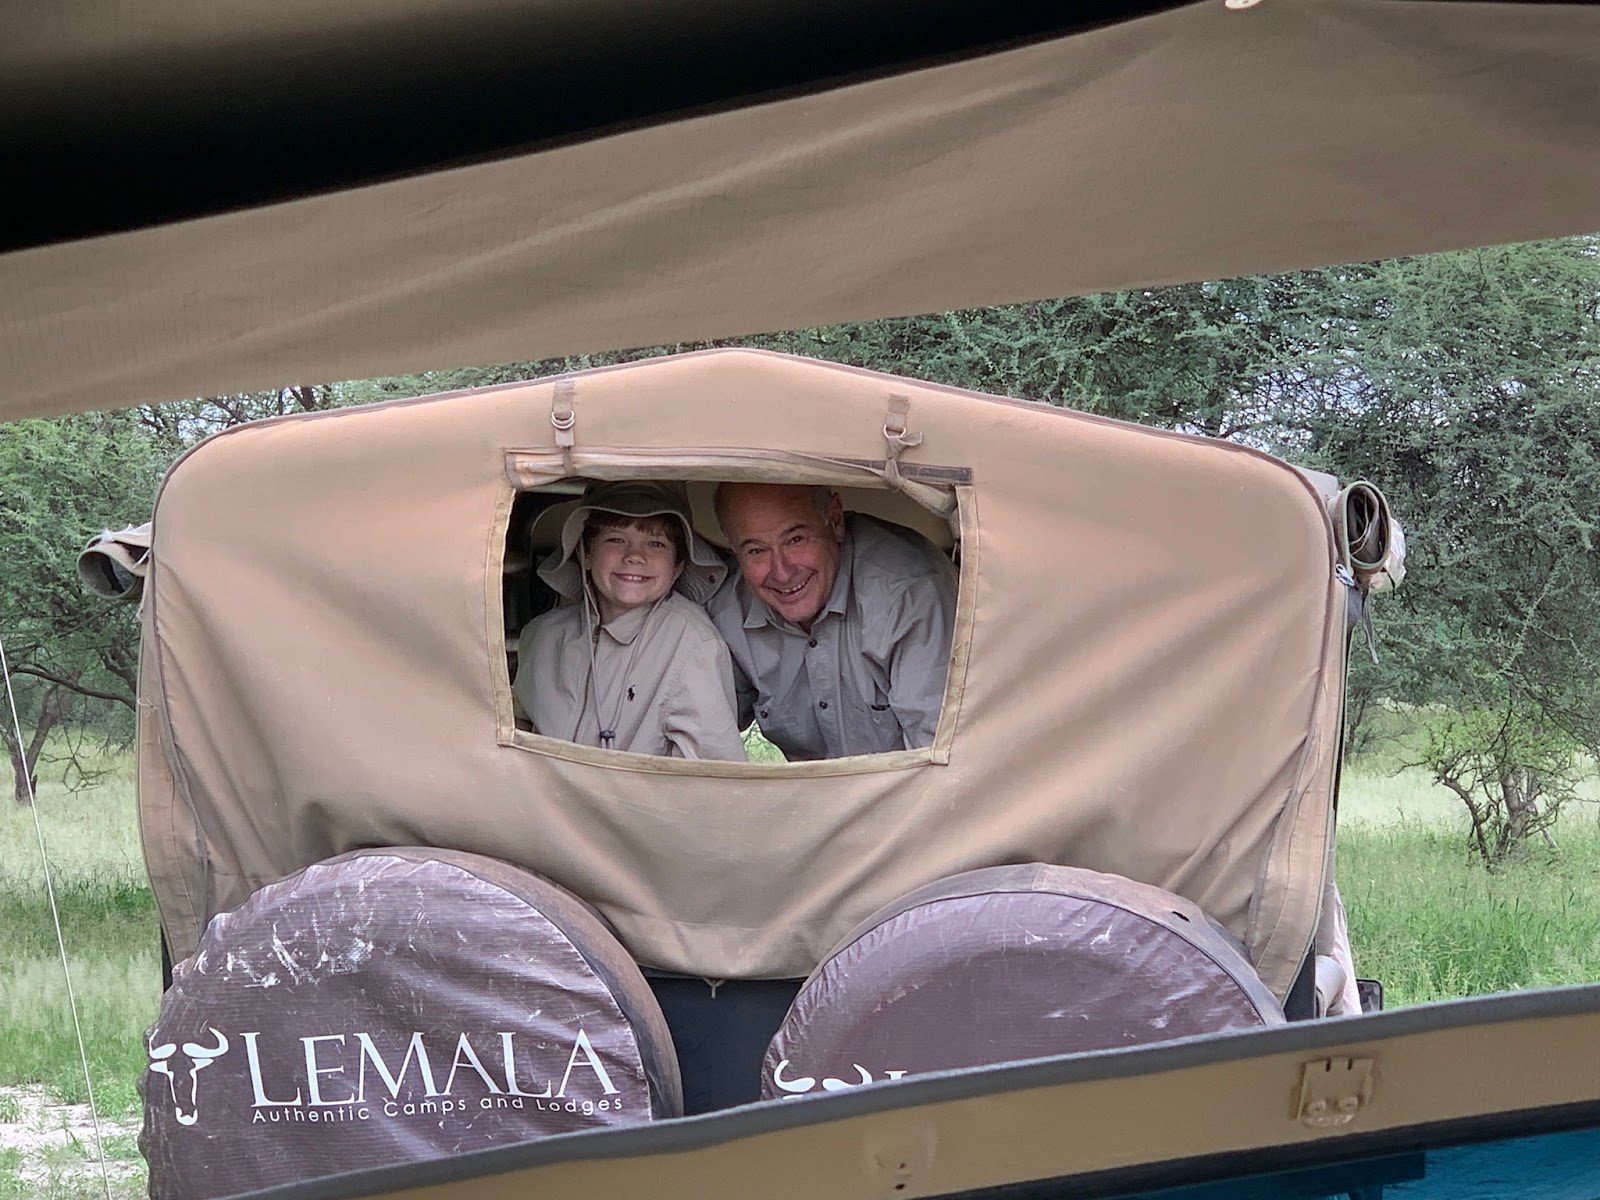 a young boy and his grandpa peer out the back window of a canvas-topped game drive vehicle, grinning